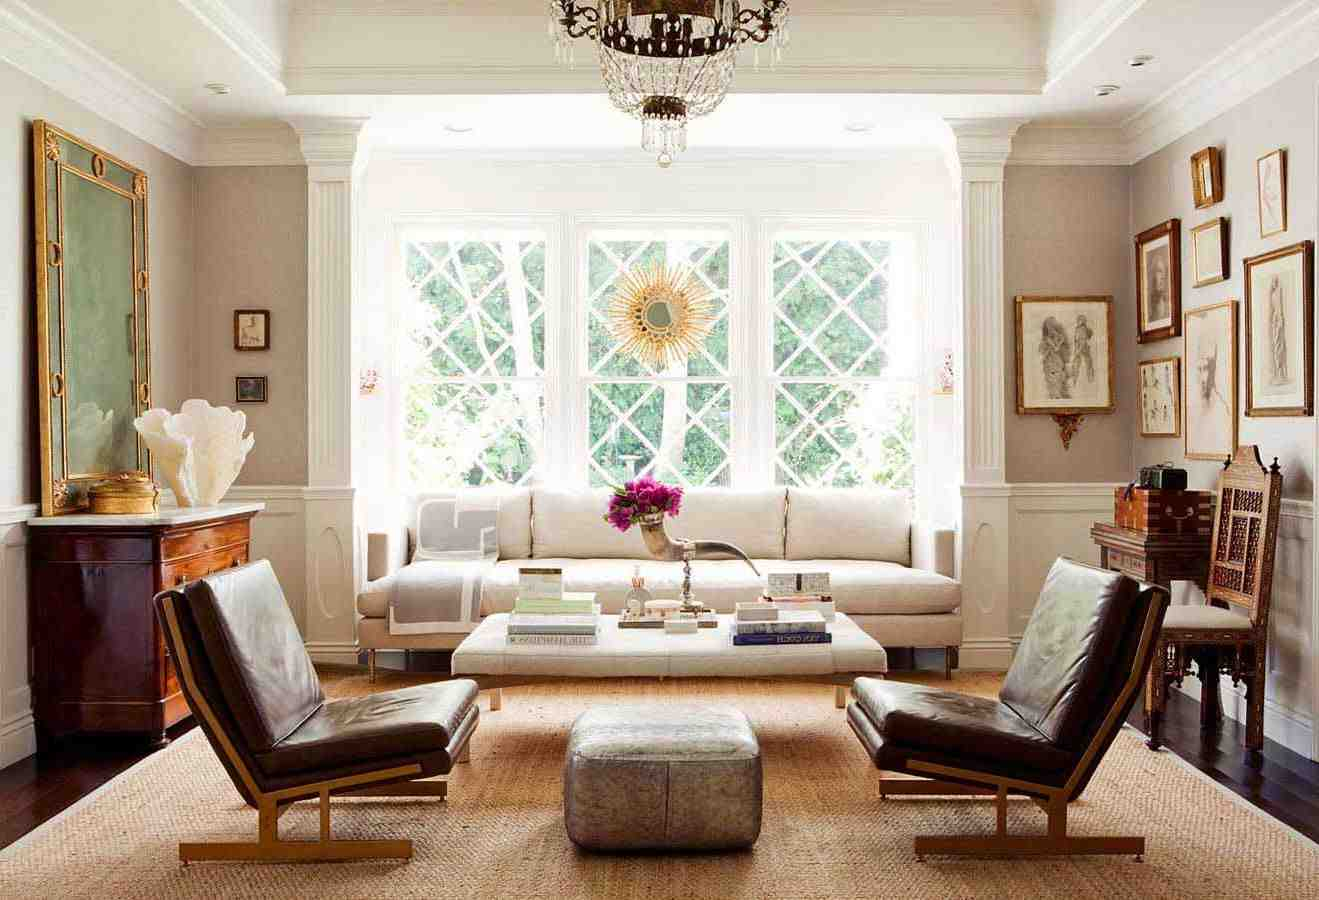 Feng shui living room layout gallery apps directories - Feng shui living room ideas ...